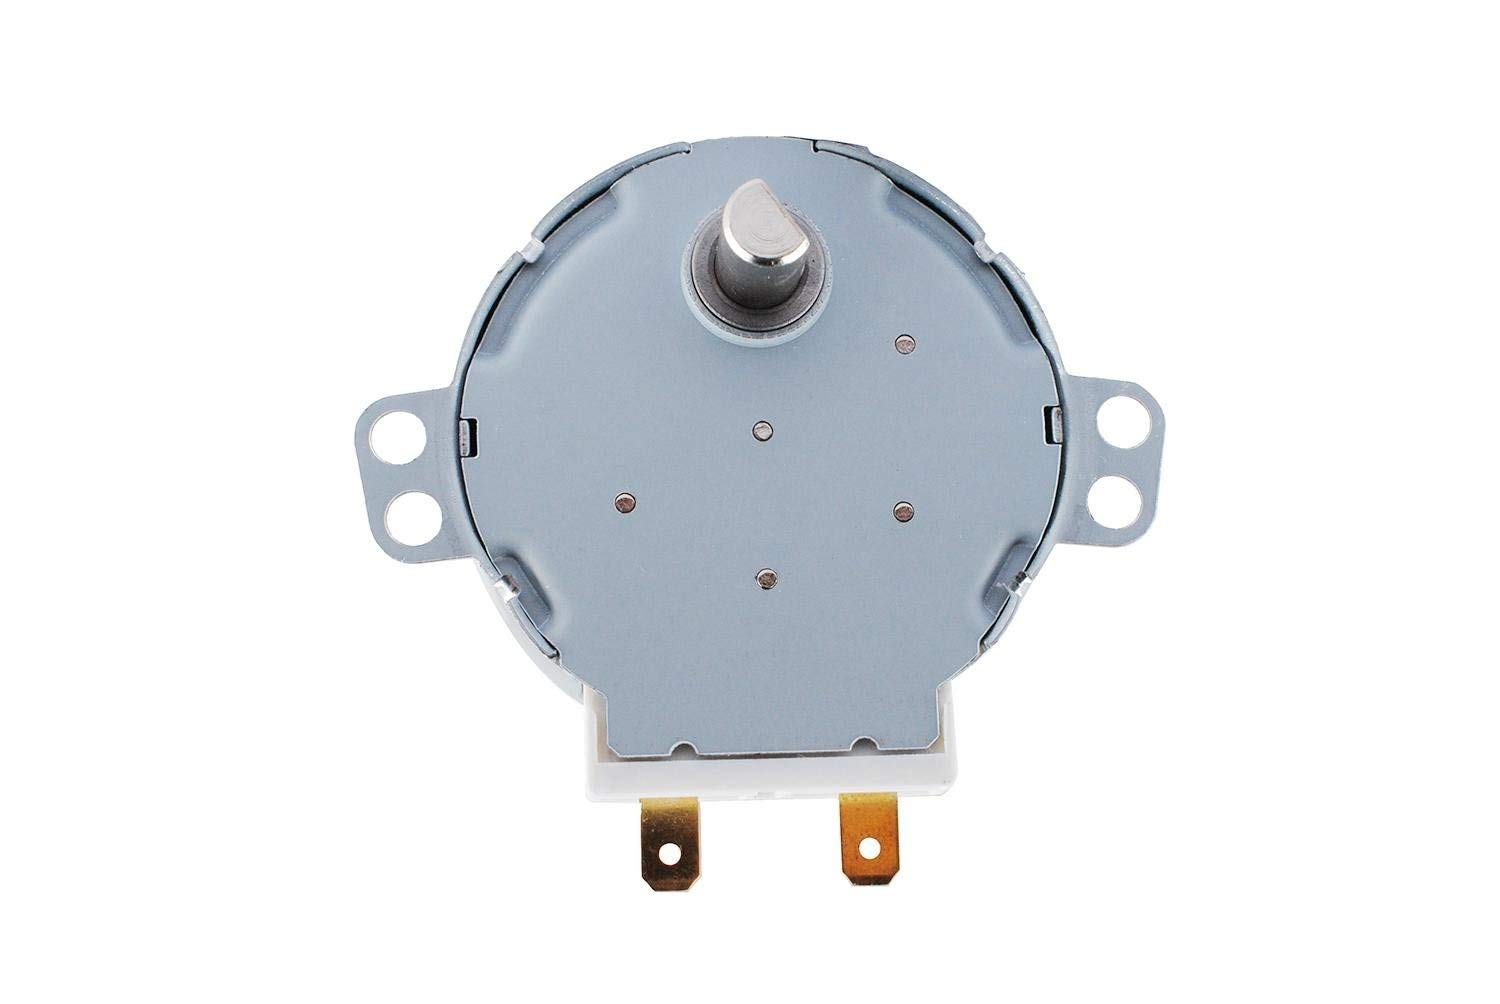 Swess WB26X10038 Microwave Turntable Motor for GE Frigidaire Replace 5304408980 WB26X10038 AP2024962 PS237772